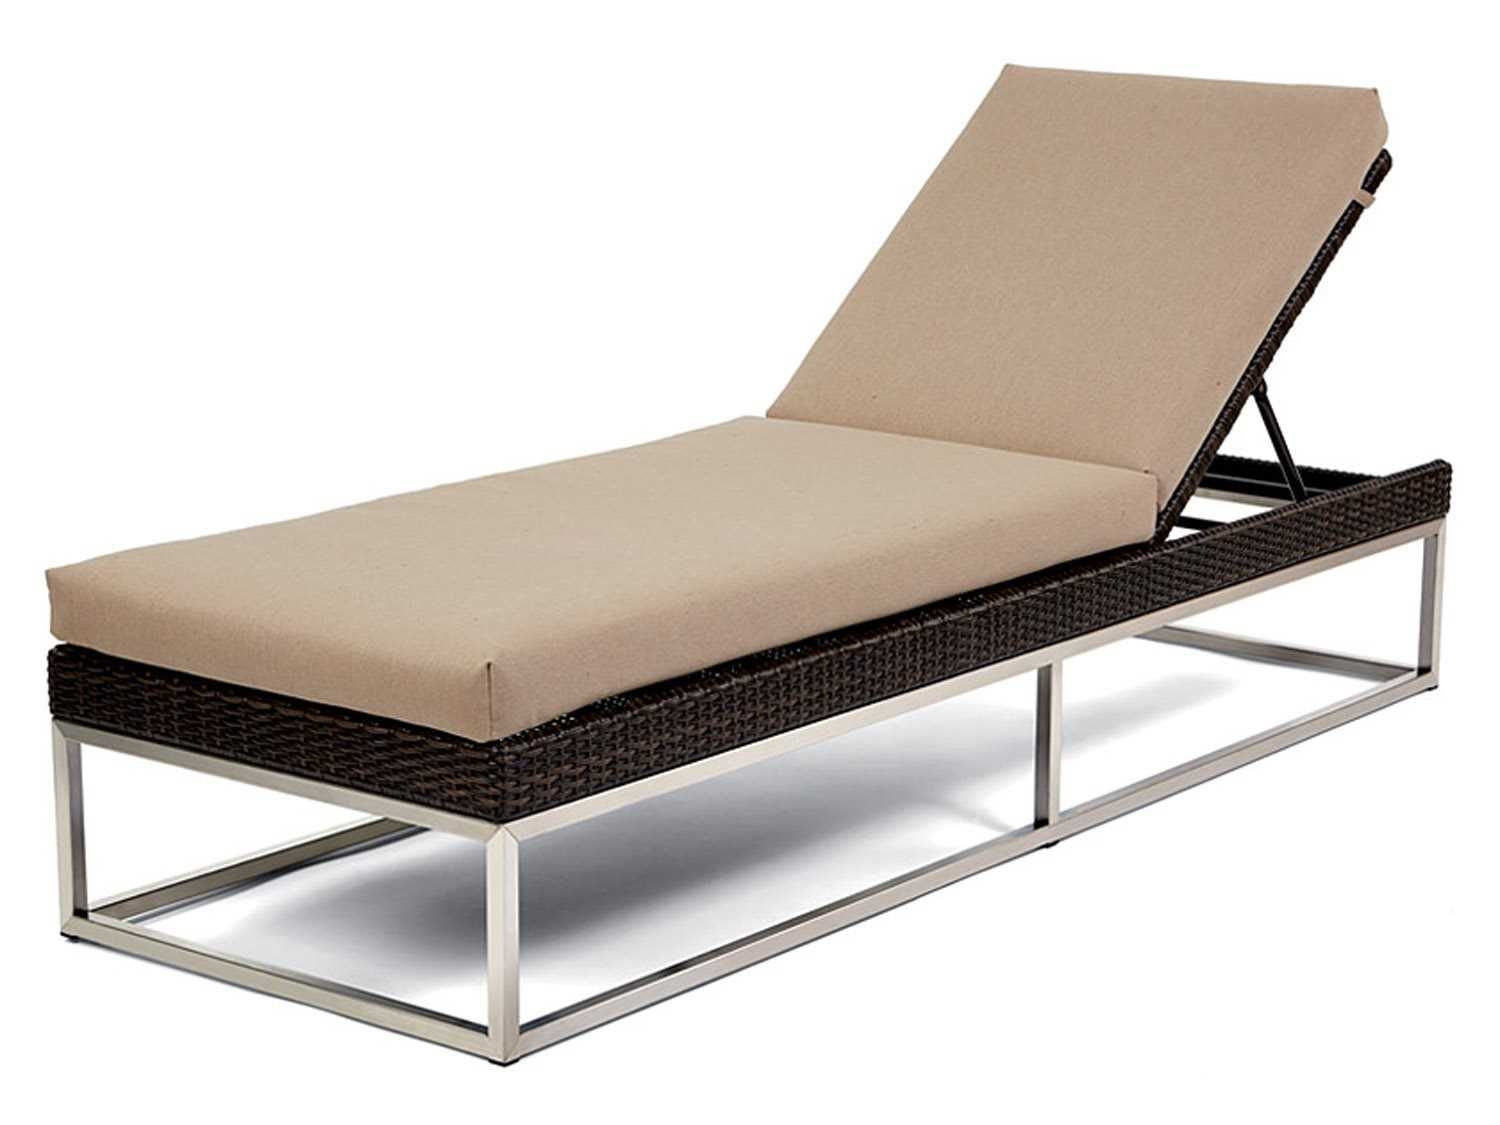 Caluco mirabella wicker cushion side adjustable chaise for Bamboo chaise lounge